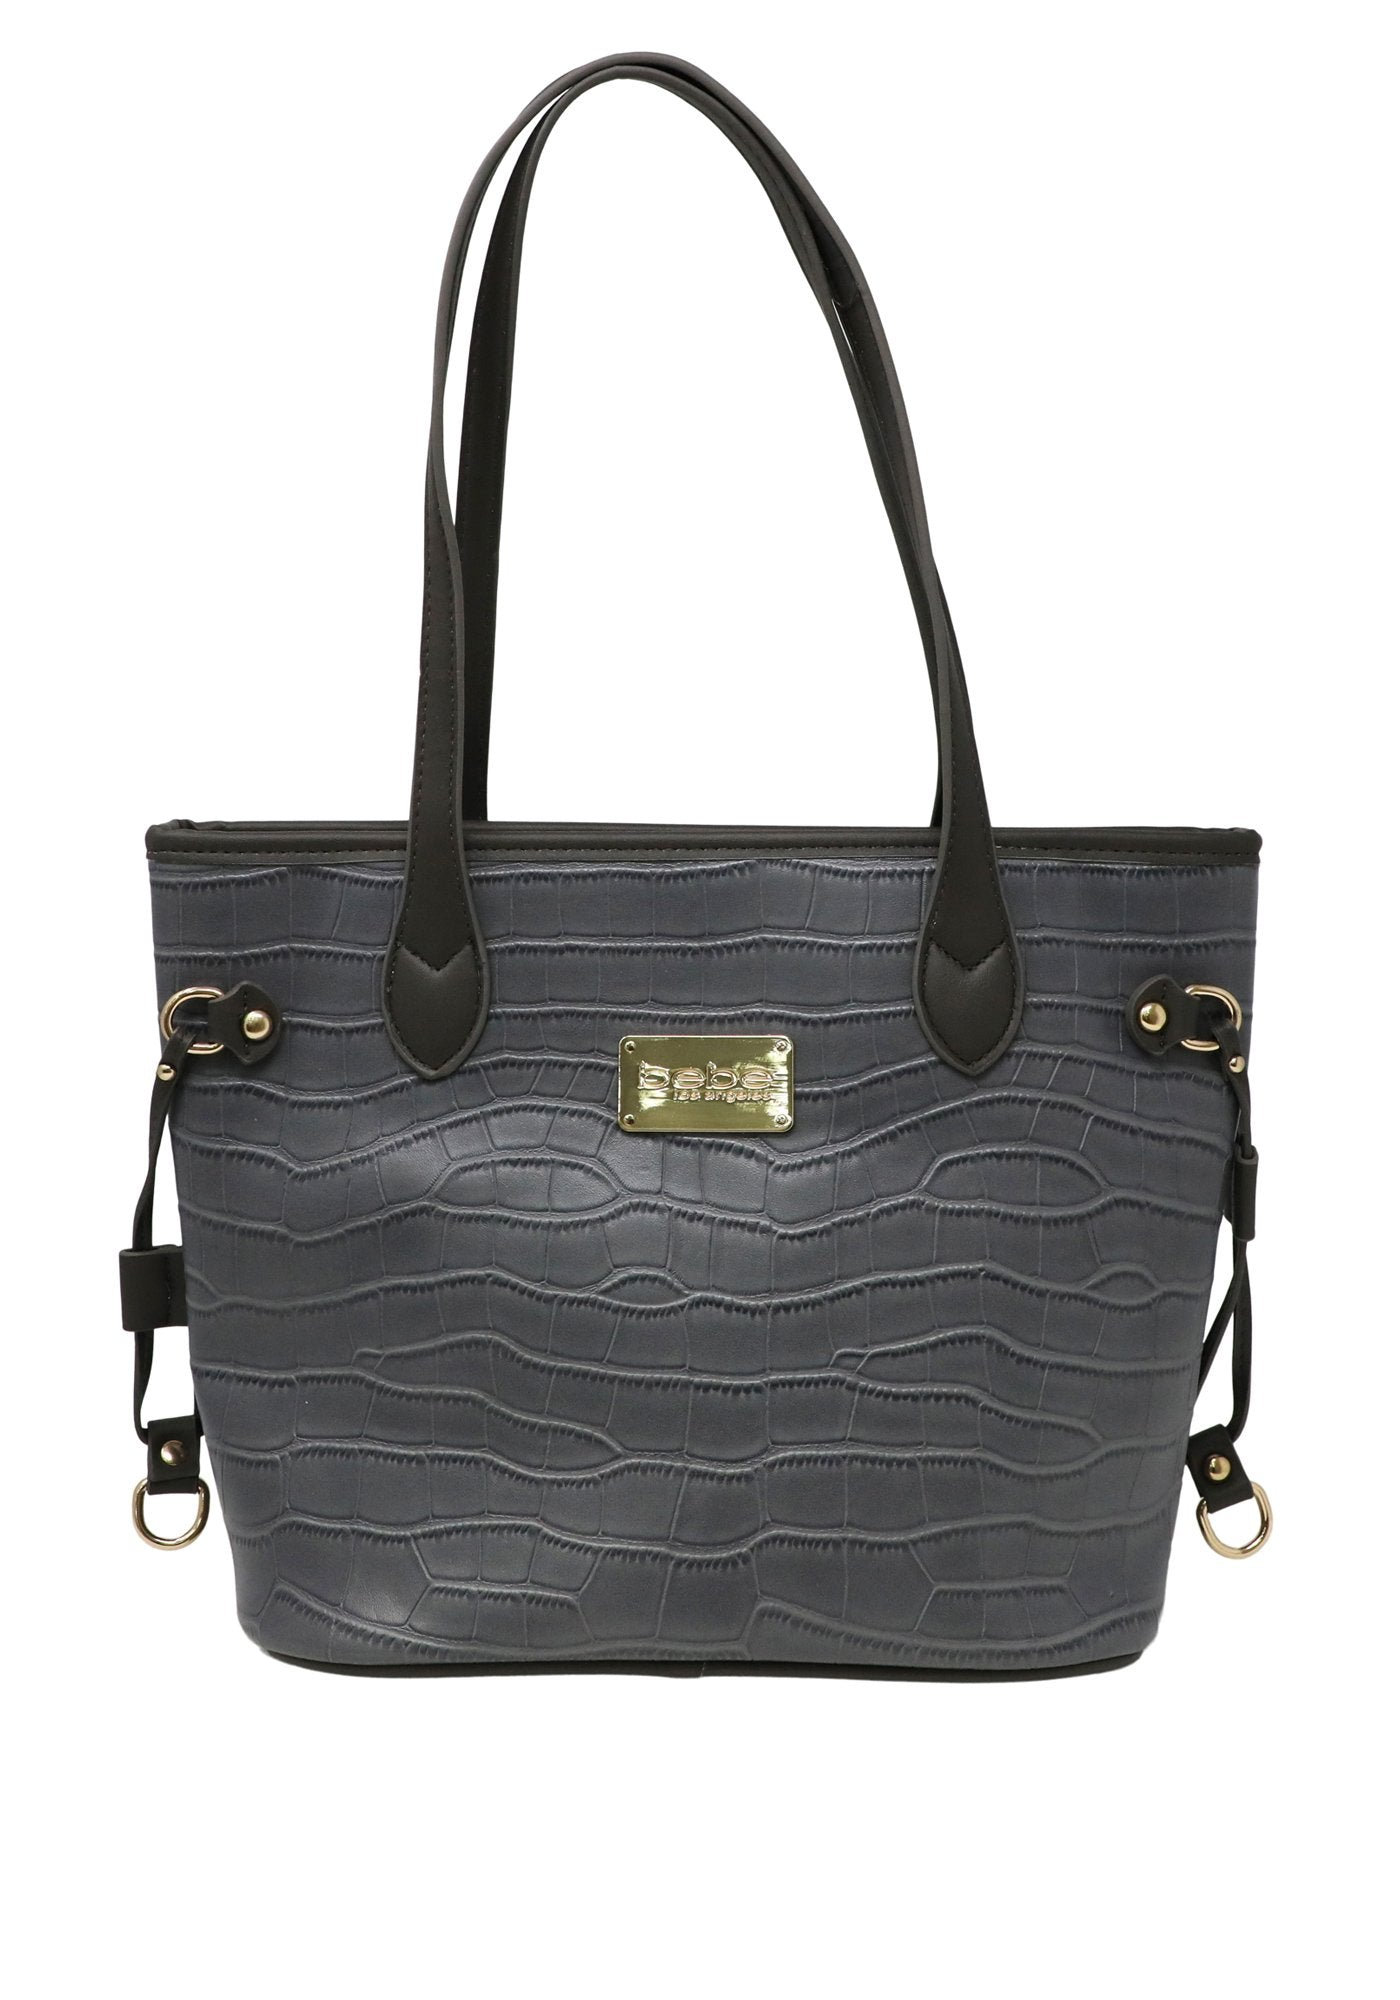 Bebe Women's Micca Croc Tote Bag, Size OS in Grey Polyurethane